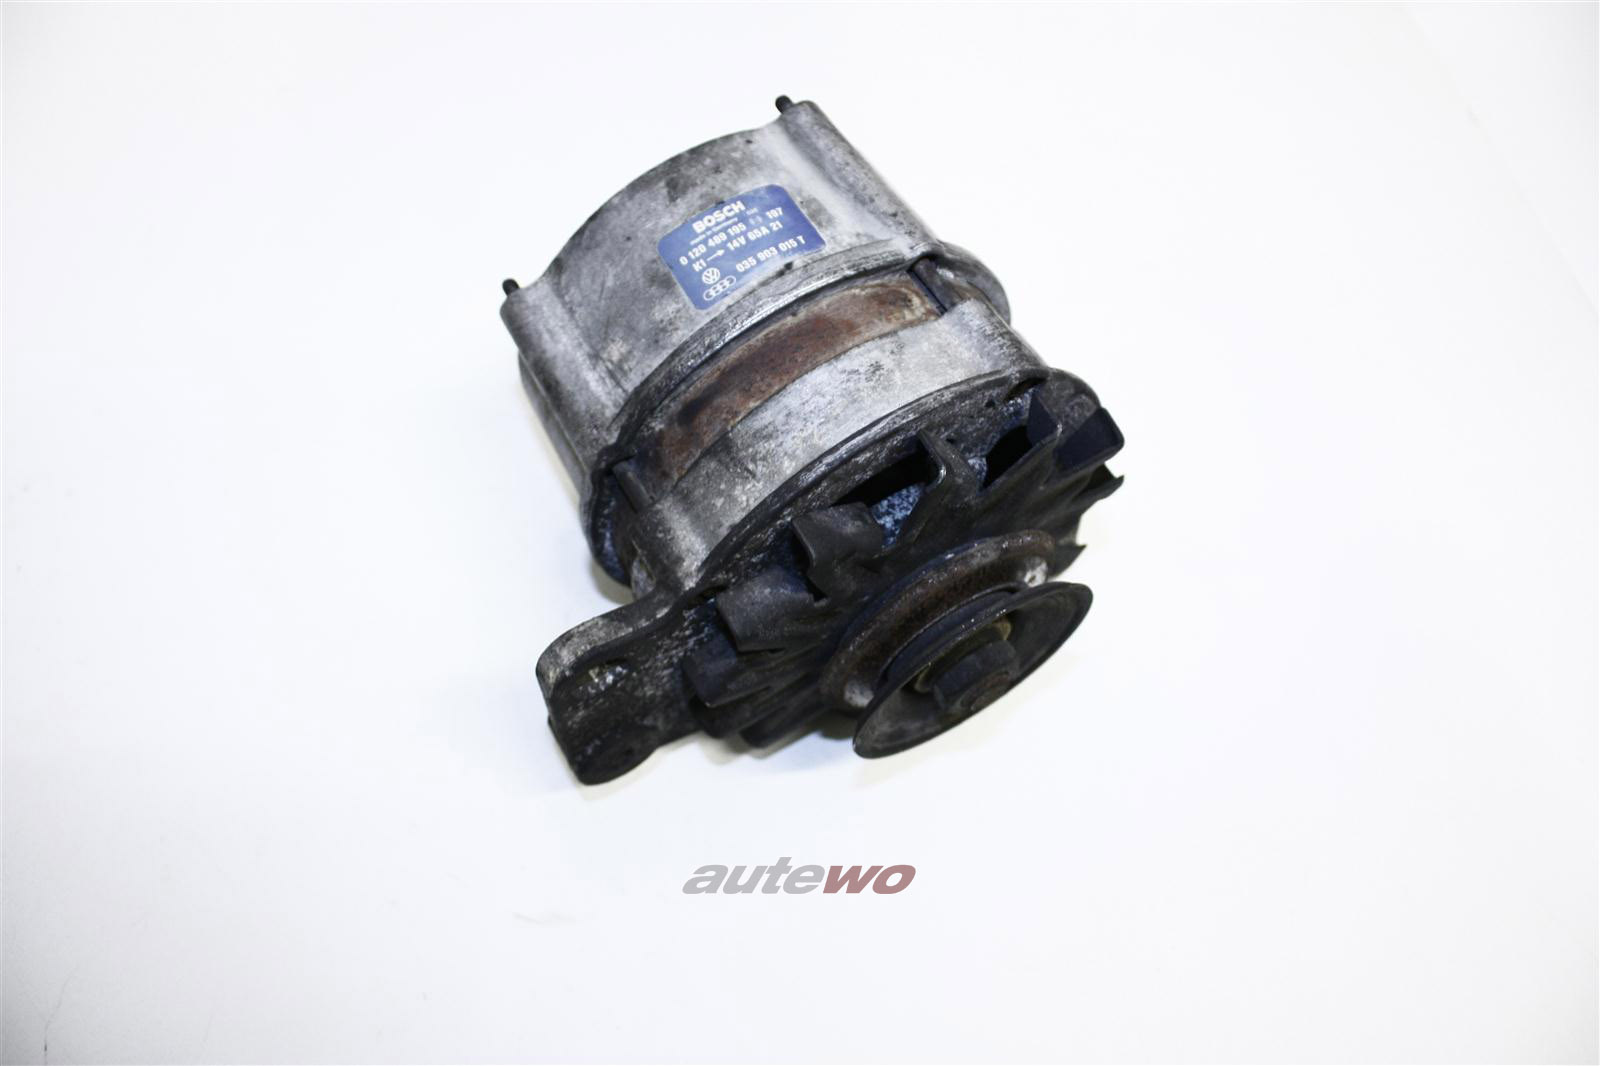 Audi 80/90/Coupe Typ 81/85/100 Typ 43 Lichtmaschine 65A 068903017NX 035903015T